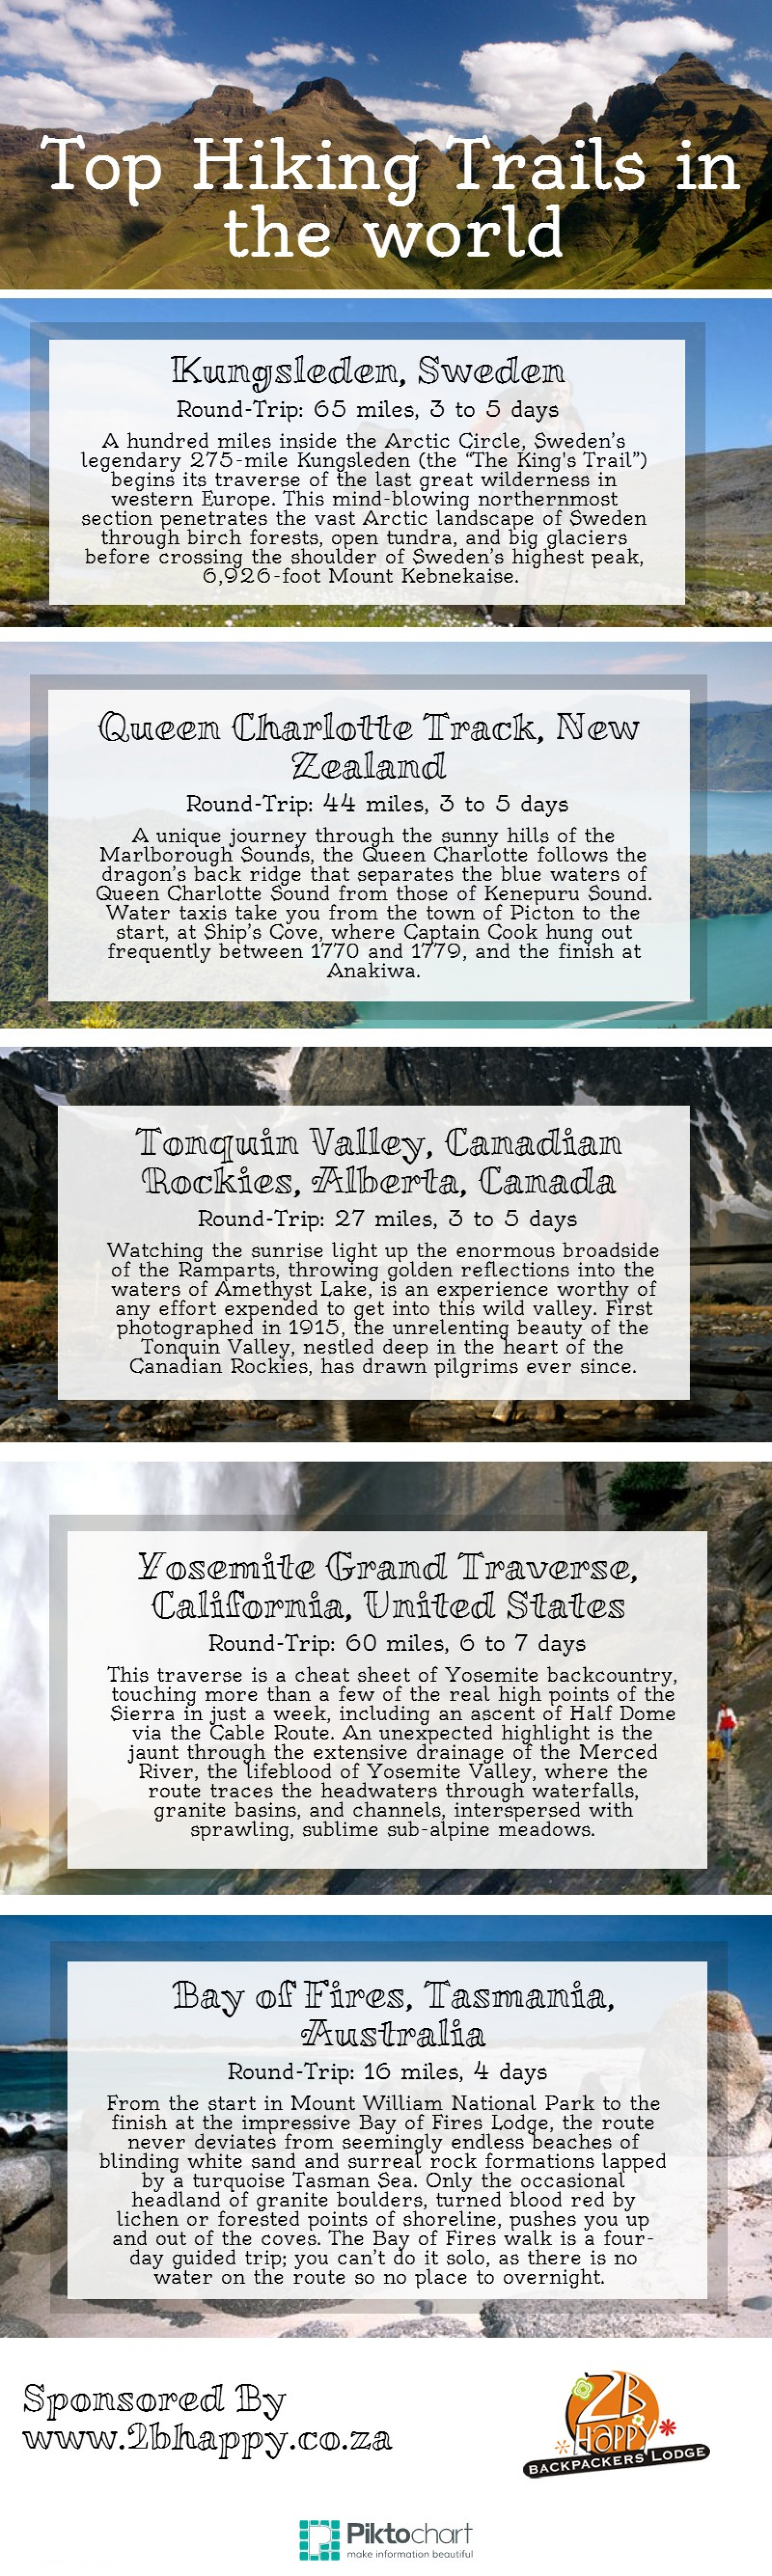 Top Hiking Trails Infographic